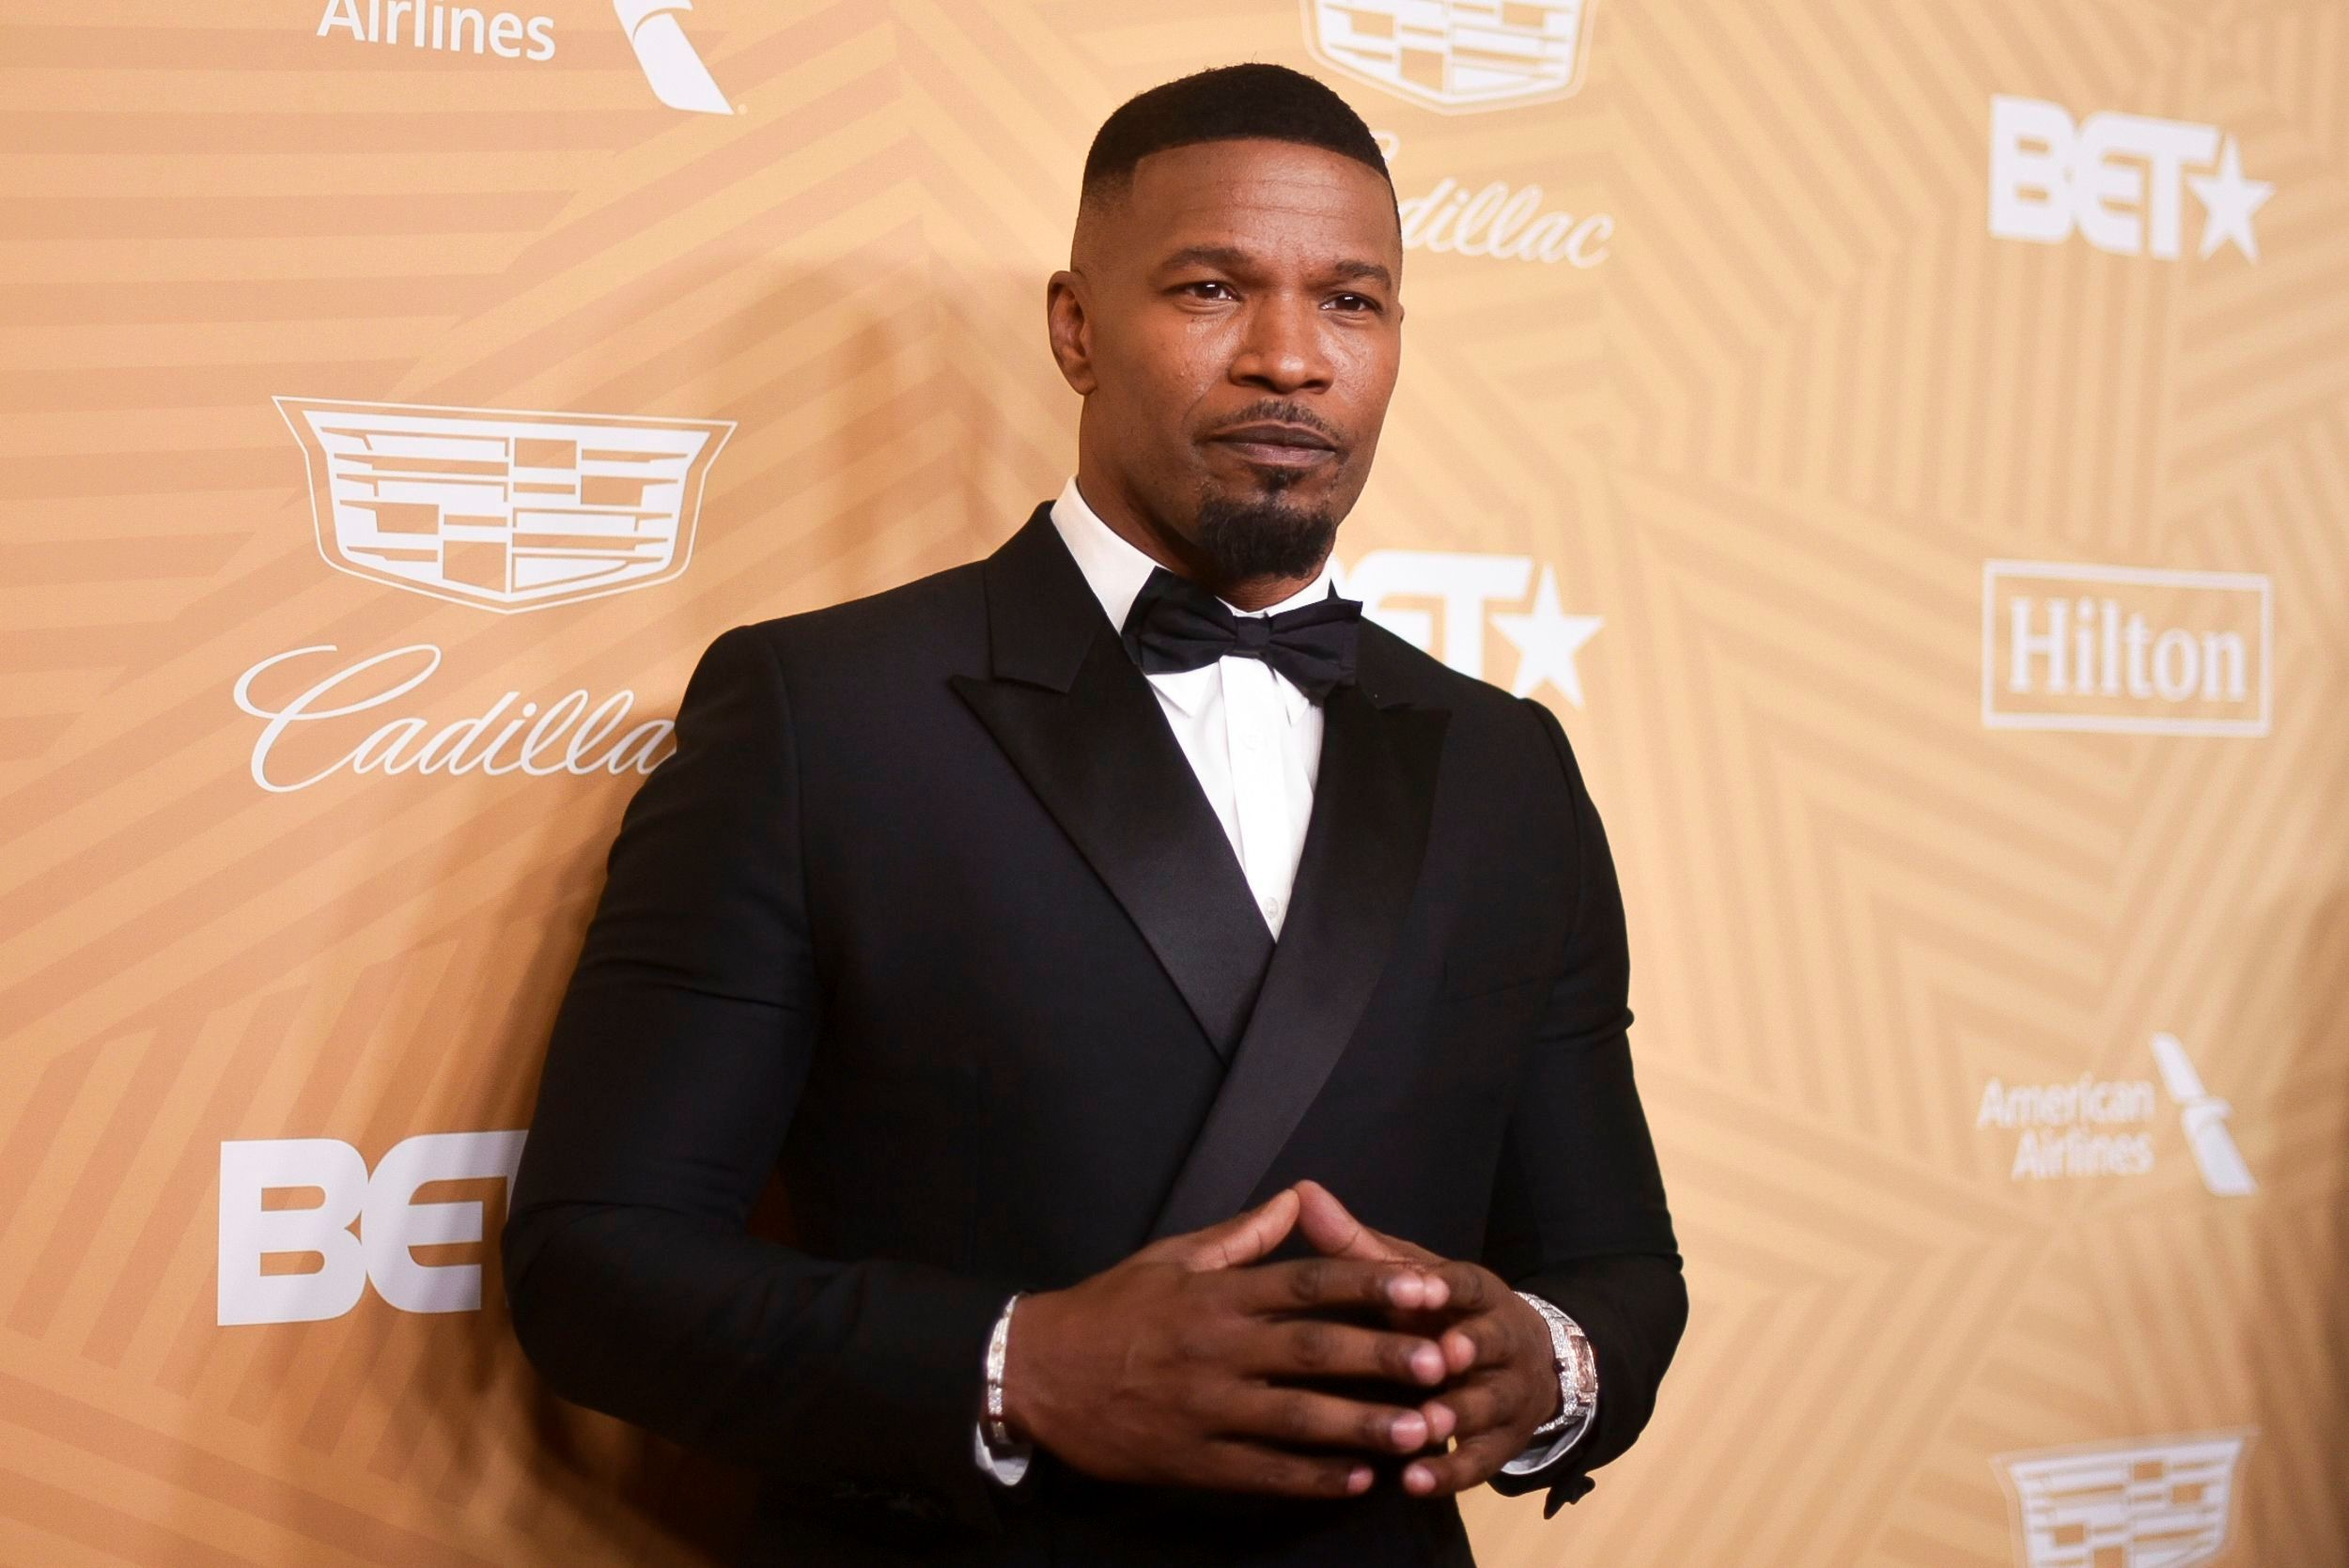 Jamie Foxx Undergoes Transformation to Play Mike Tyson in Upcoming Biopic